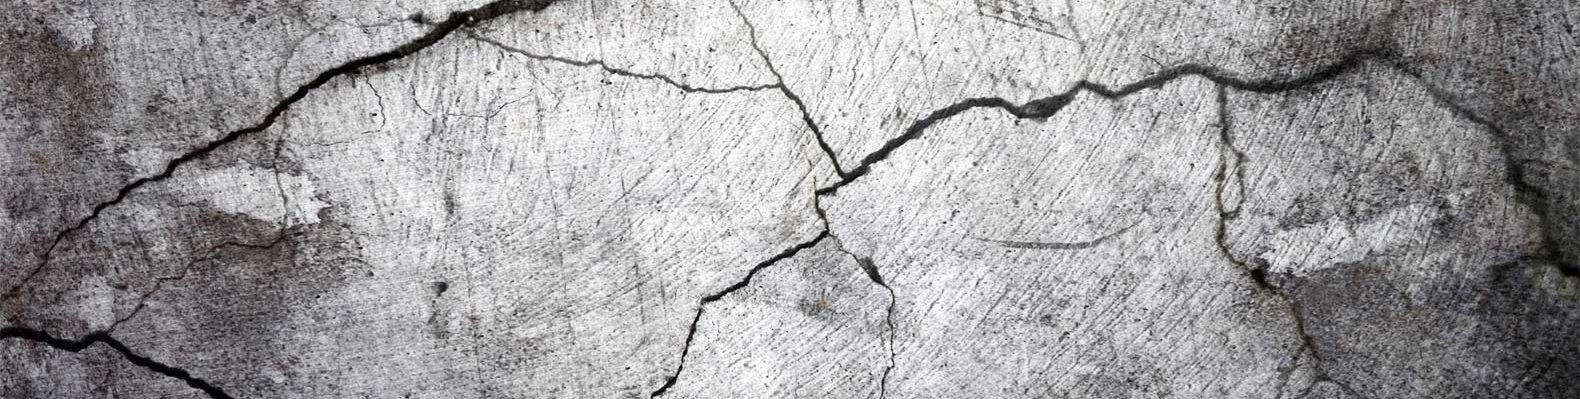 self-healing concrete, self healing concrete, self-healing concrete fungus, self-healing concrete fungi, self healing concrete fungus, self healing concrete fungi, Binghamton University self healing concrete, Binghamton University fungus, Binghamton University fungi, fungi for concrete cracks